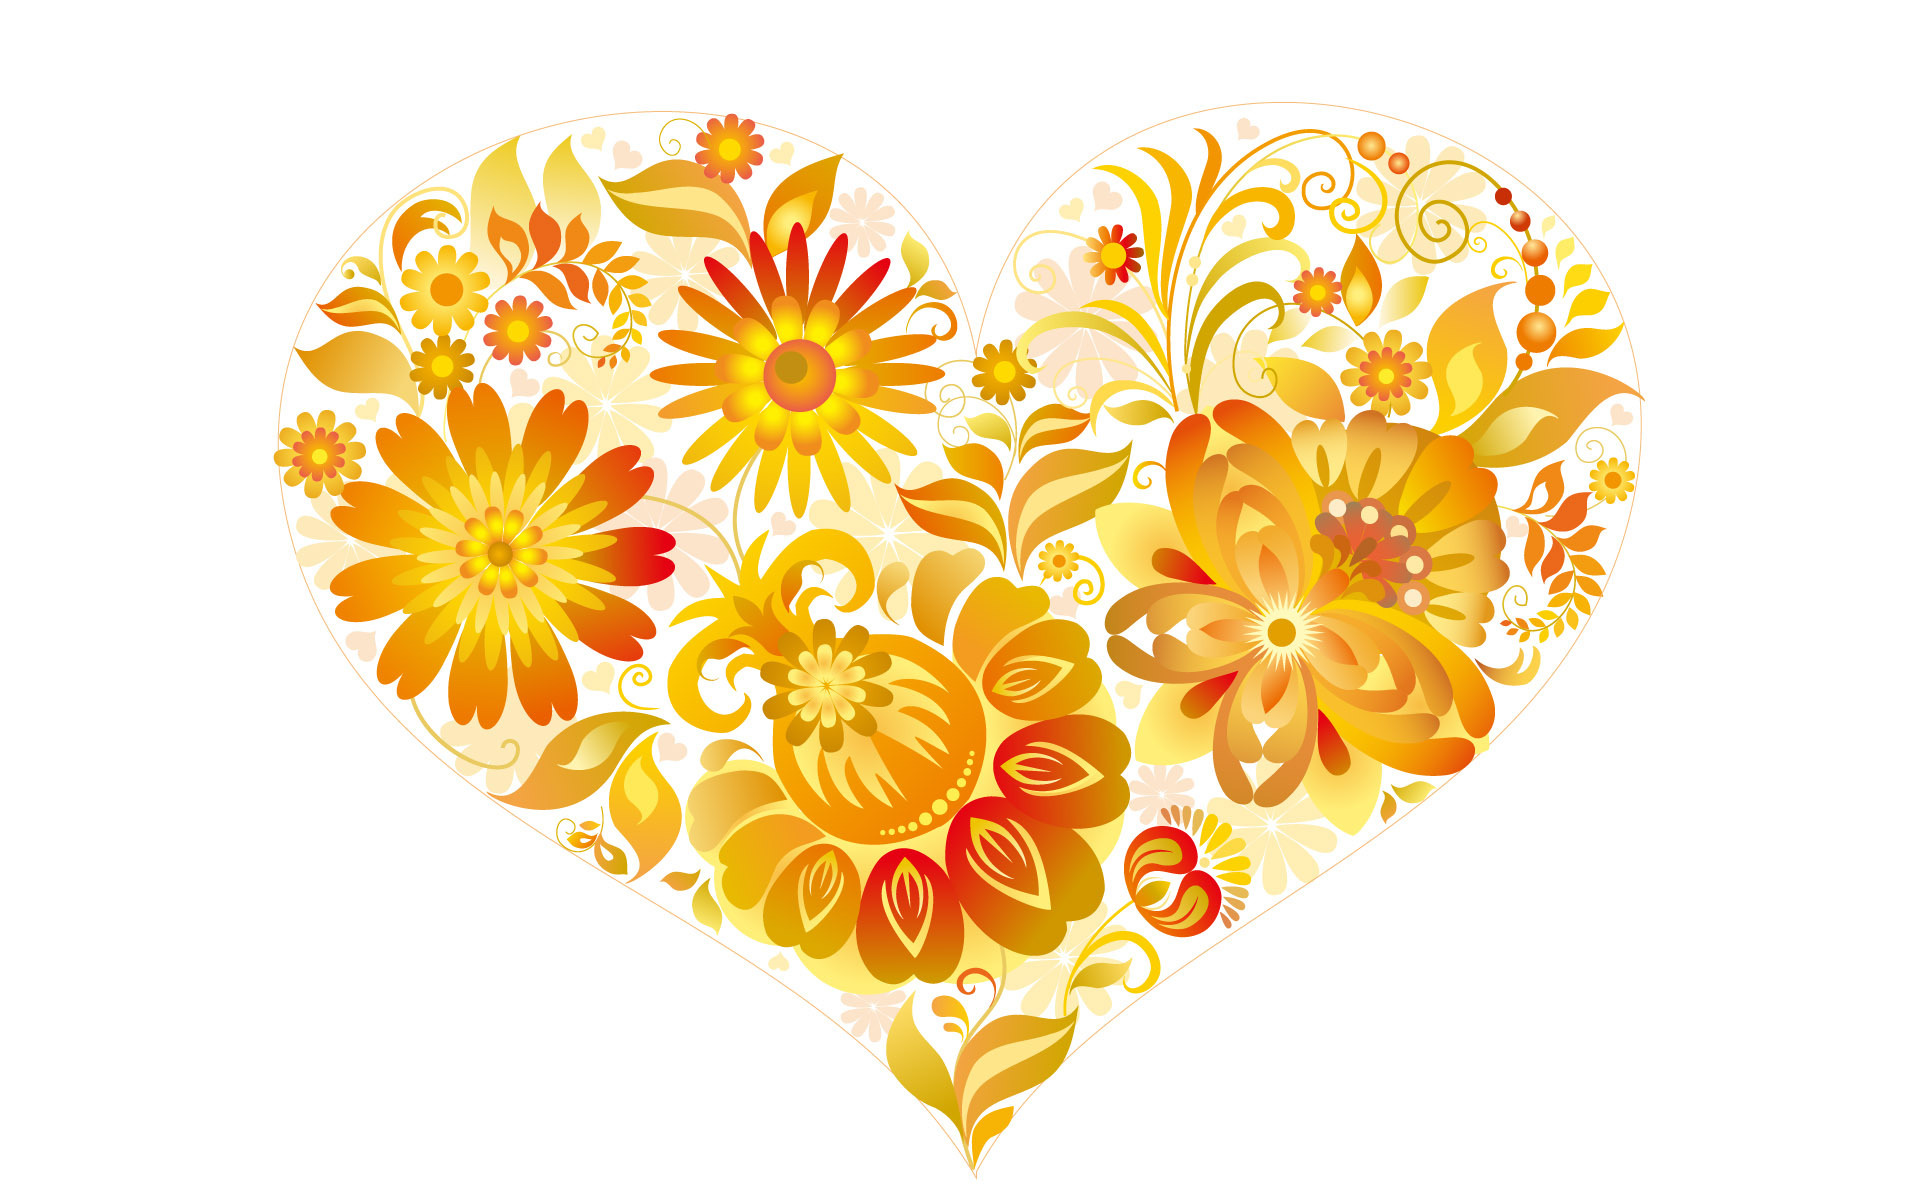 Love Heart with Flowers 559.12 Kb